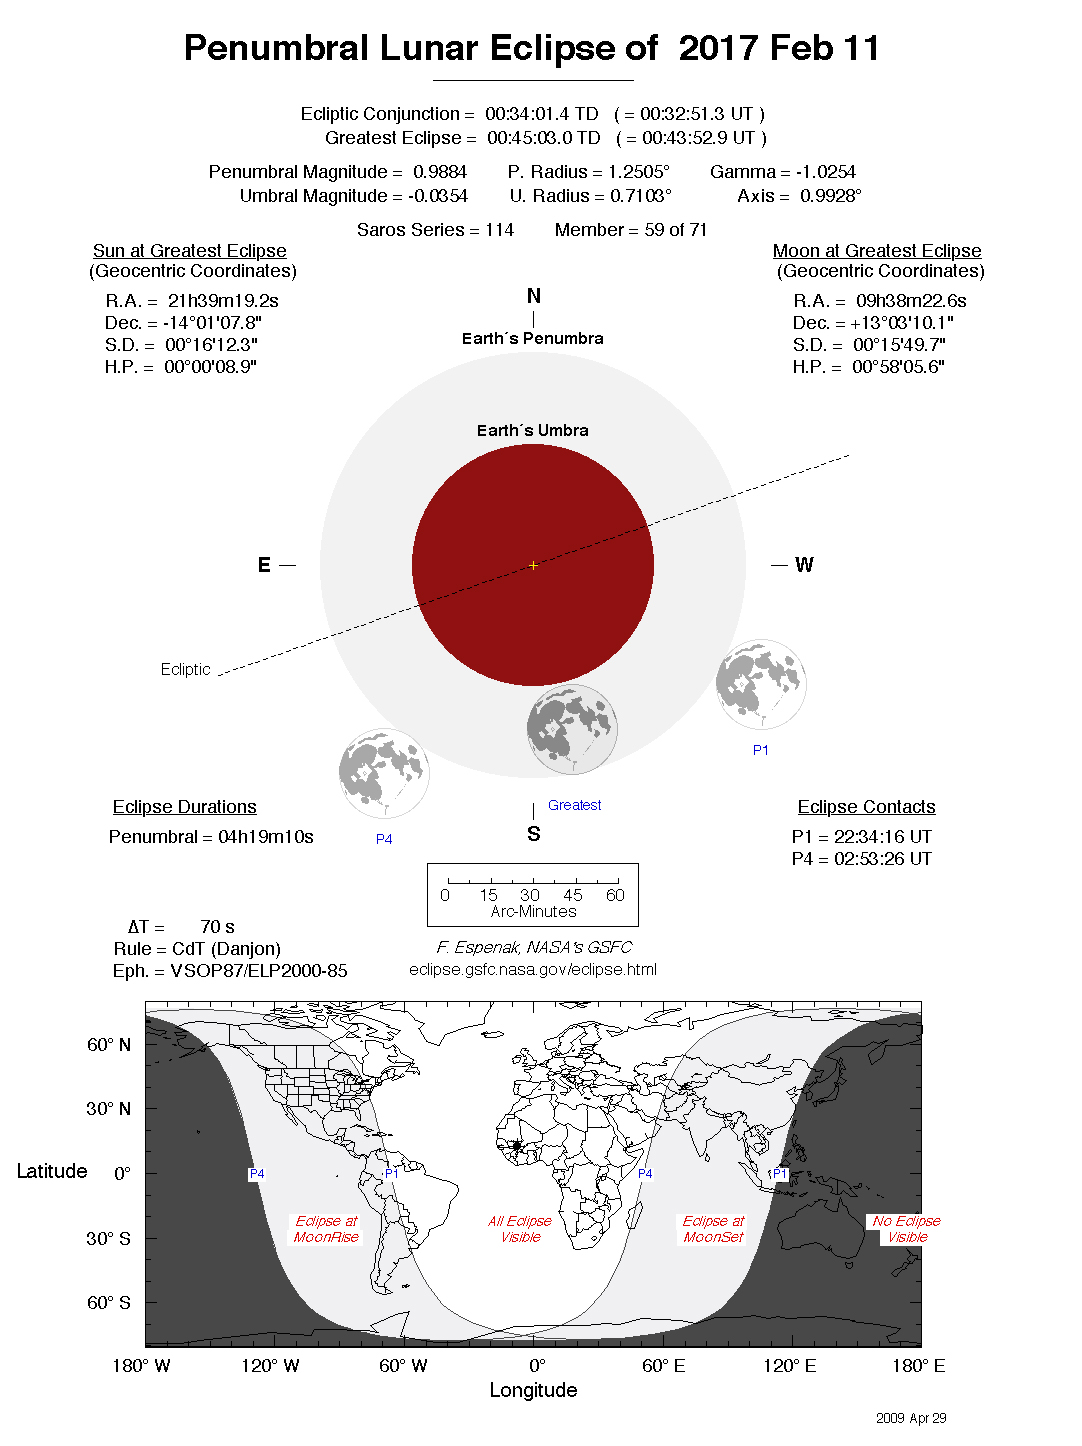 proxy - February Full Moon 2017: When to See the 'Snow Moon' Eclipse - Science and Research